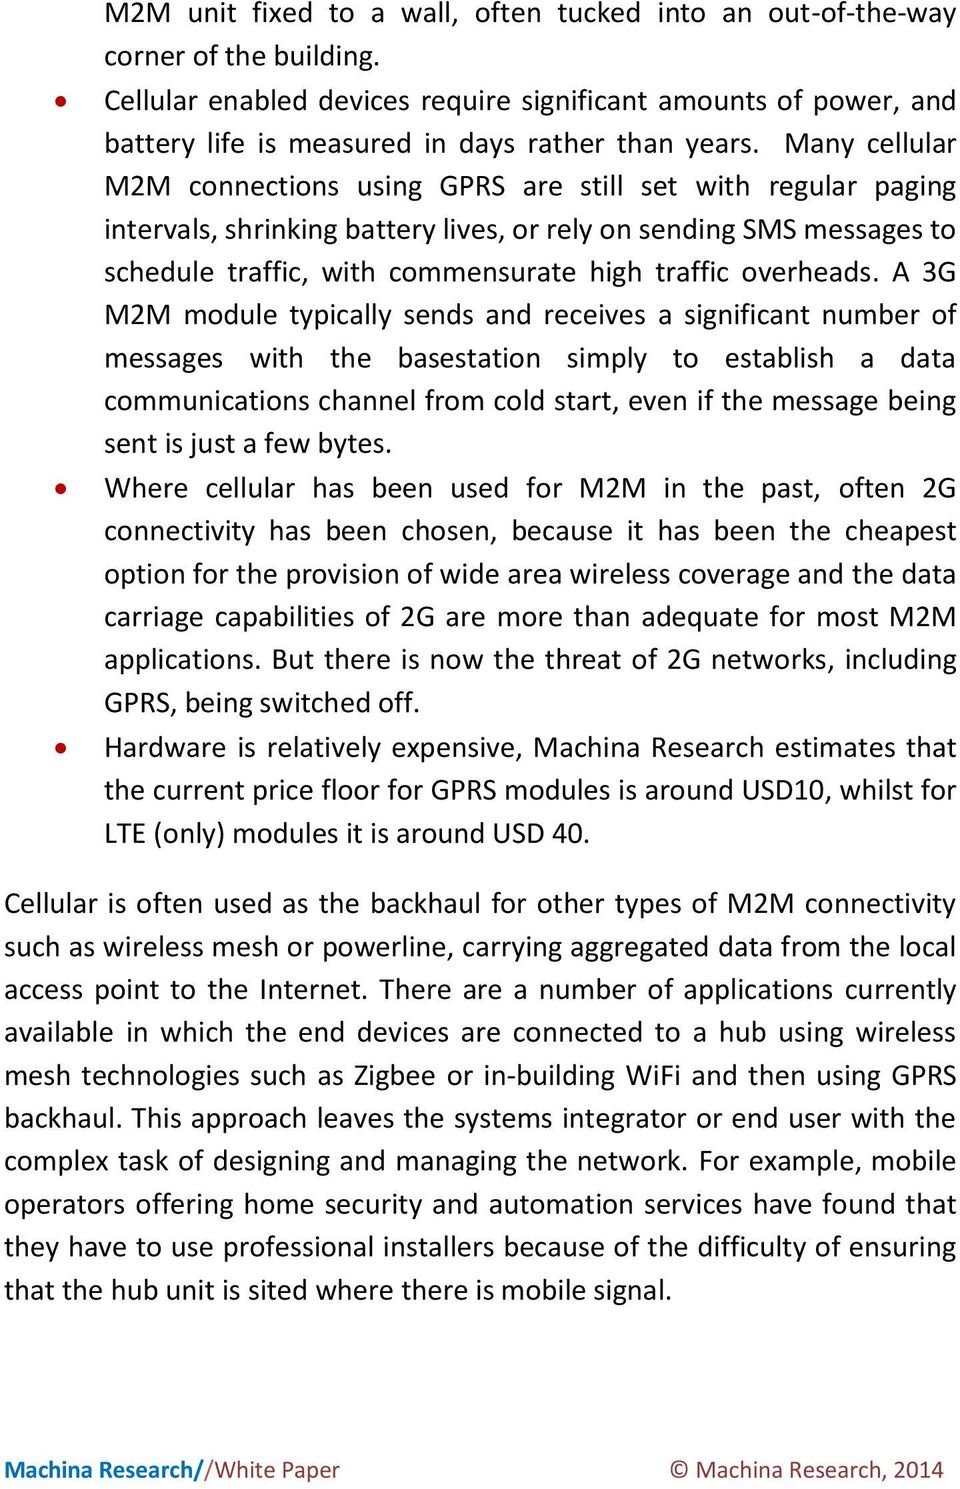 Many cellular M2M connections using GPRS are still set with regular paging intervals, shrinking battery lives, or rely on sending SMS messages to schedule traffic, with commensurate high traffic